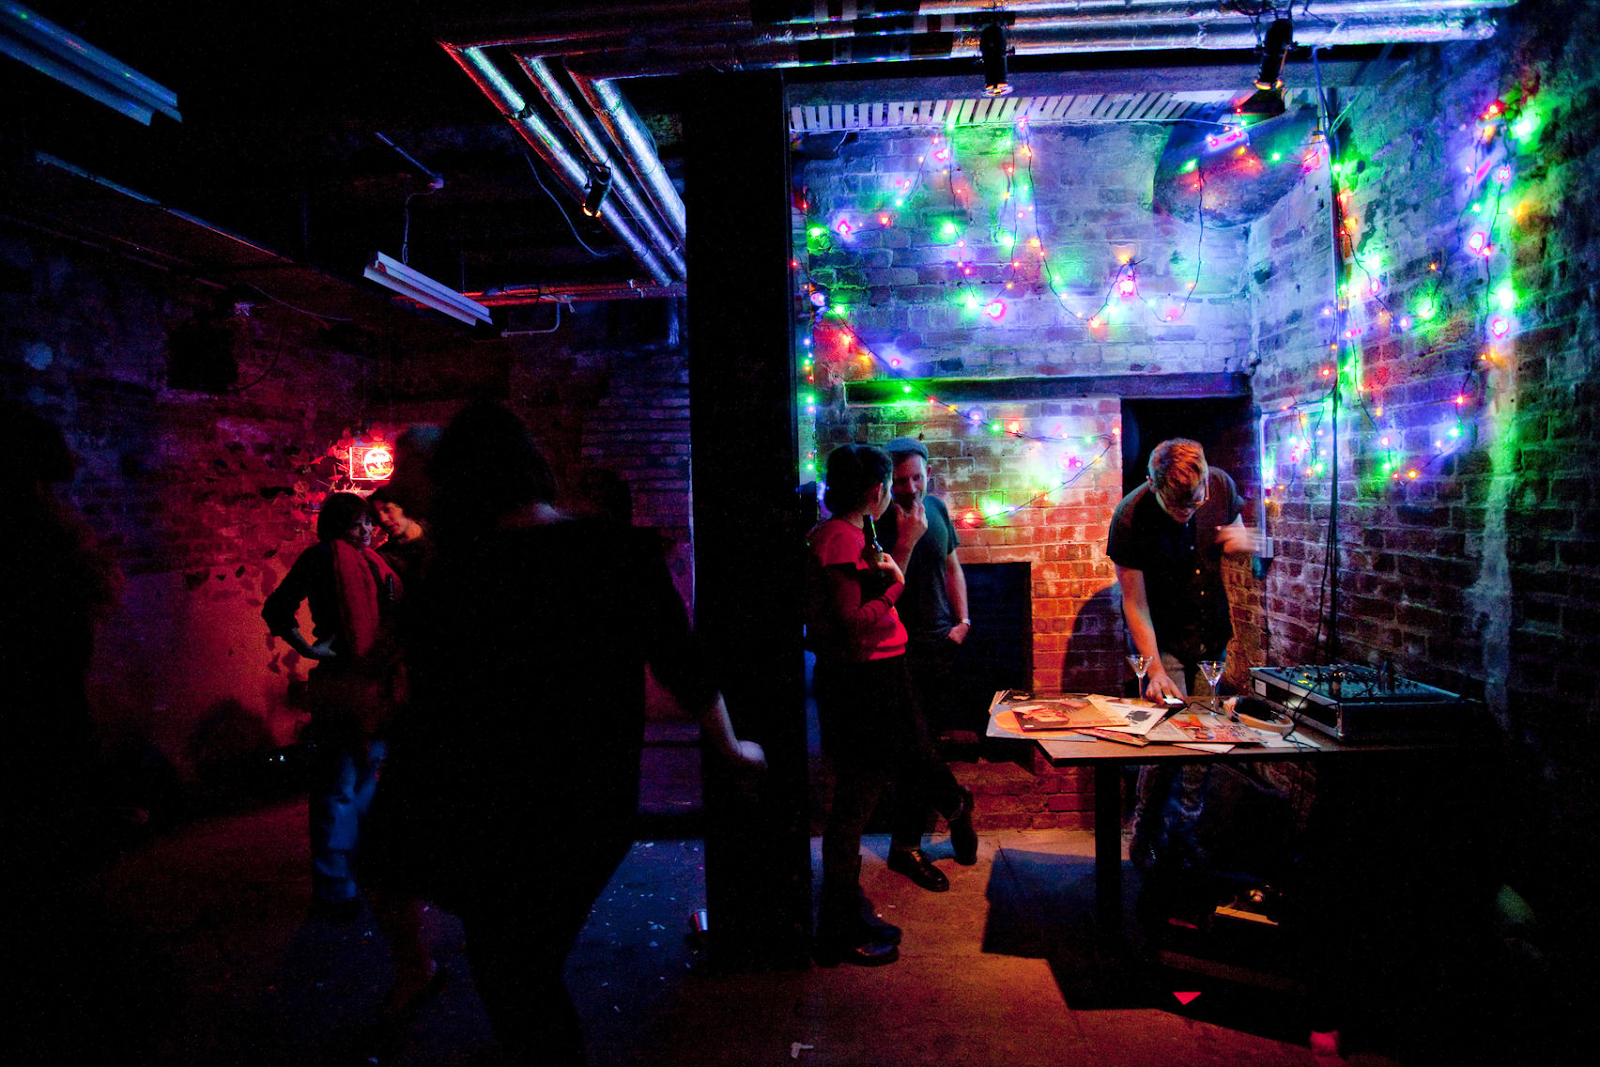 the ditch at shoreditch town hall is a dark underground bar with people in there.